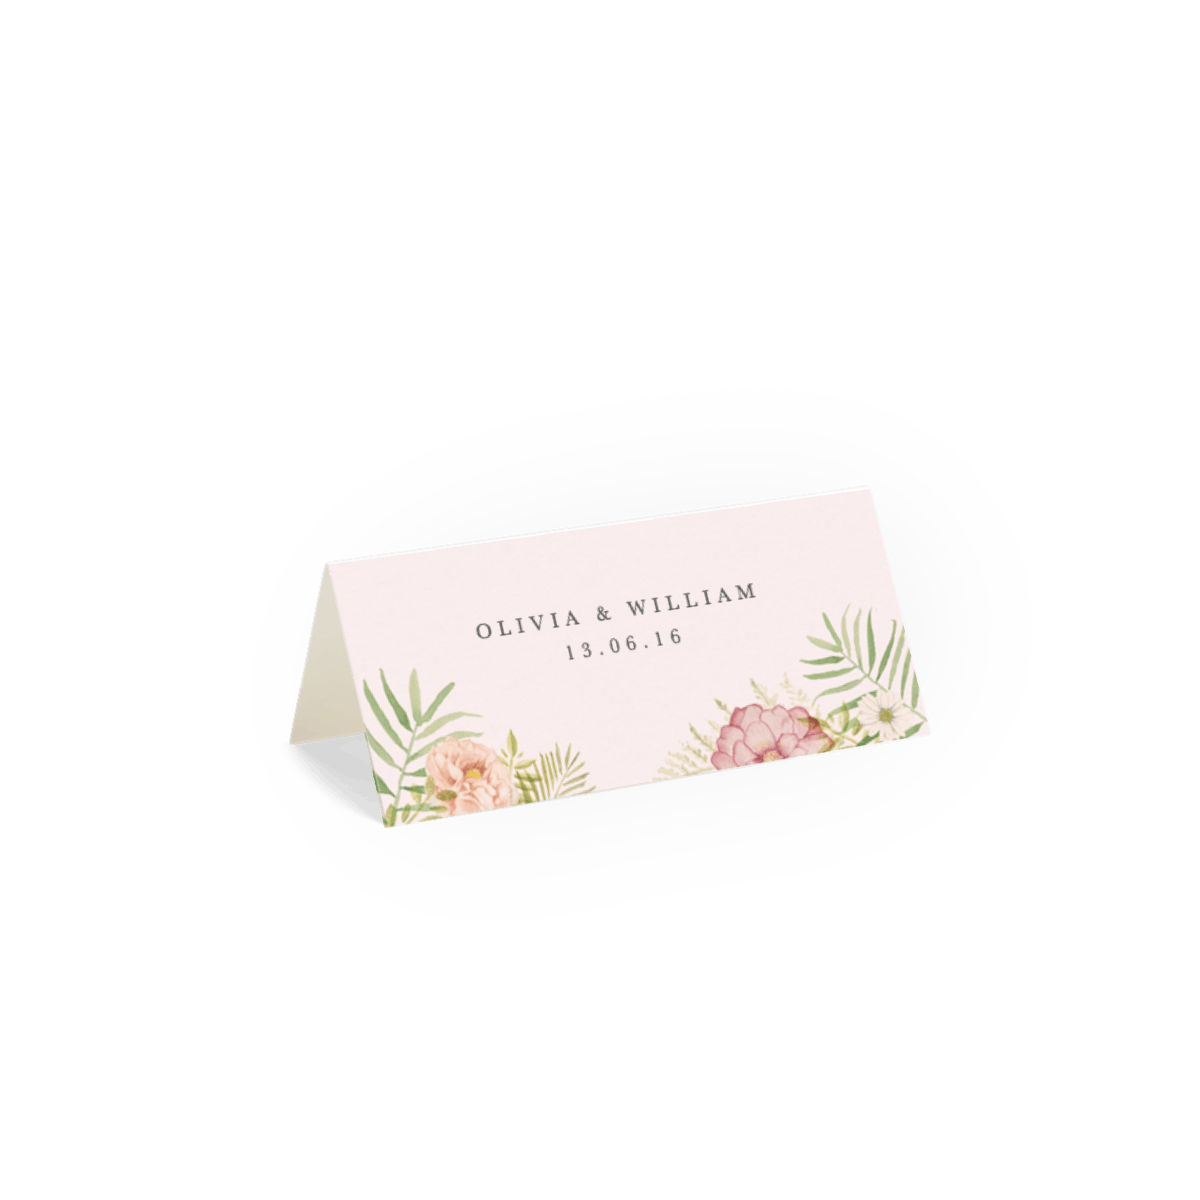 Https%3a%2f%2fwww.papier.com%2fproduct image%2f5581%2f15%2ftropical floral 1461 back 1459787158.png?ixlib=rb 1.1